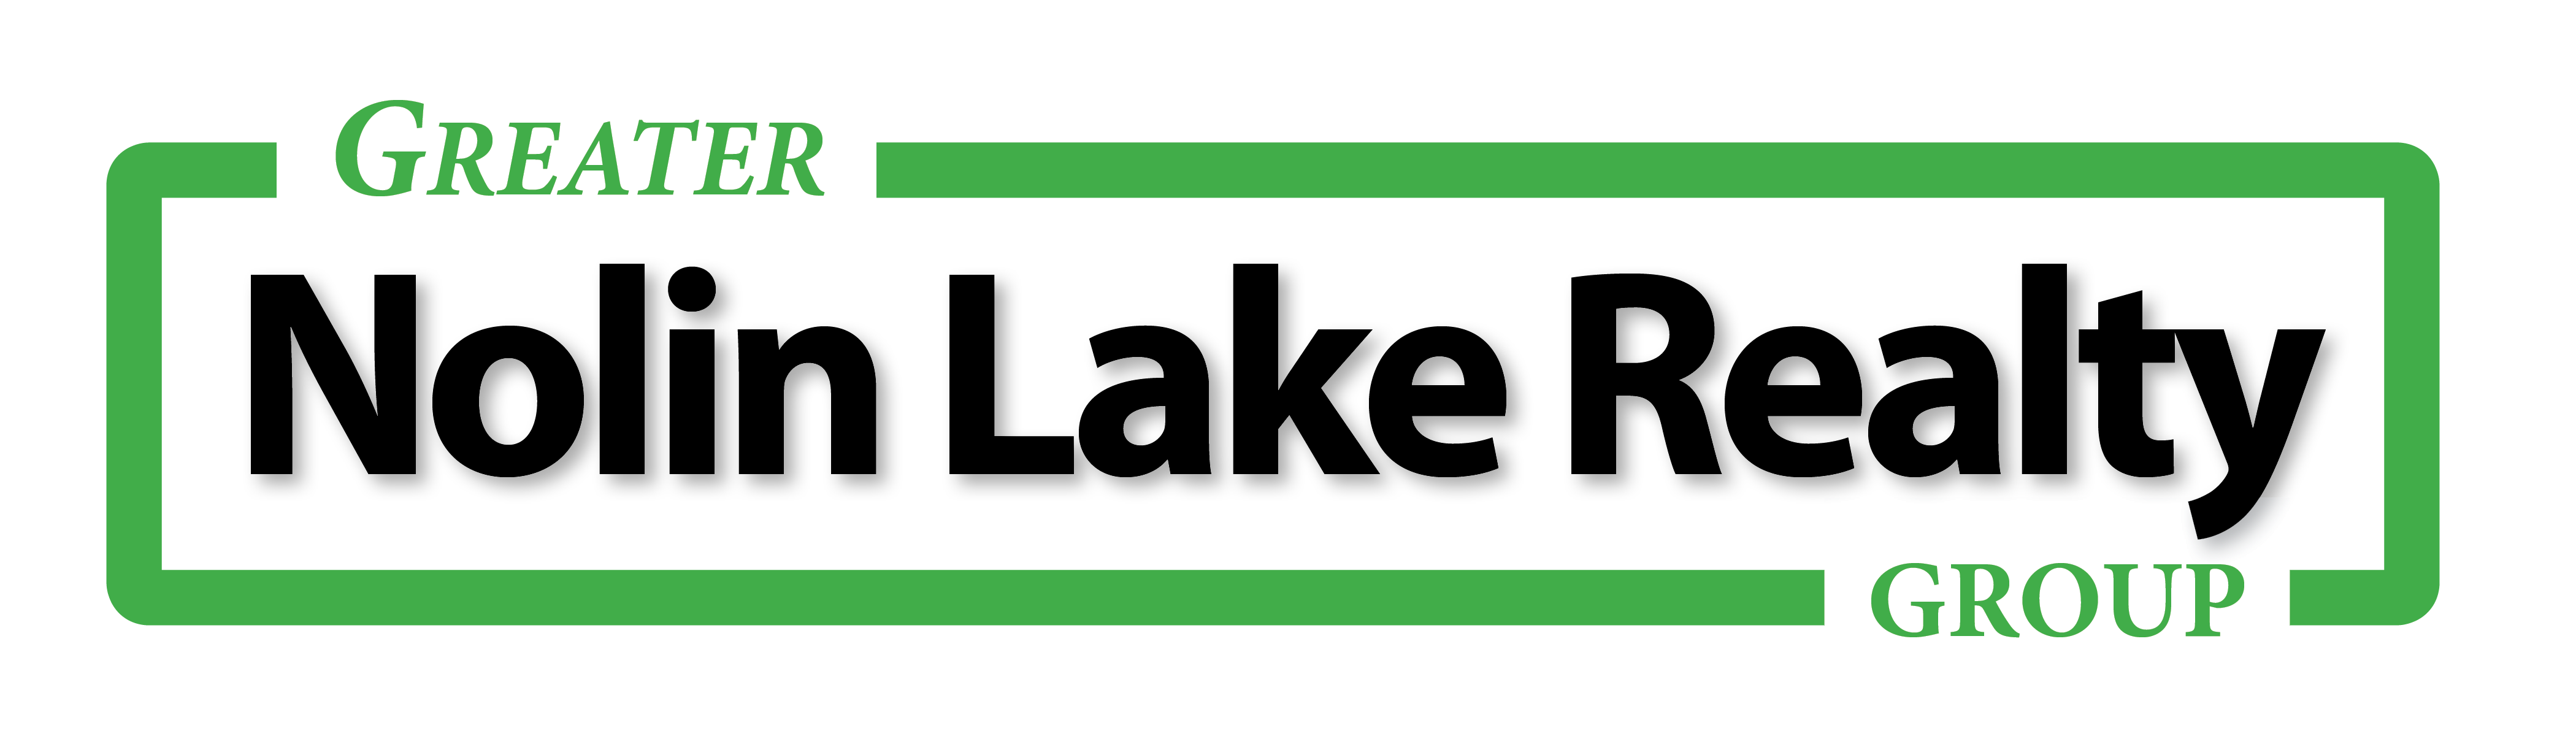 Greater Nolin Lake Realty Group